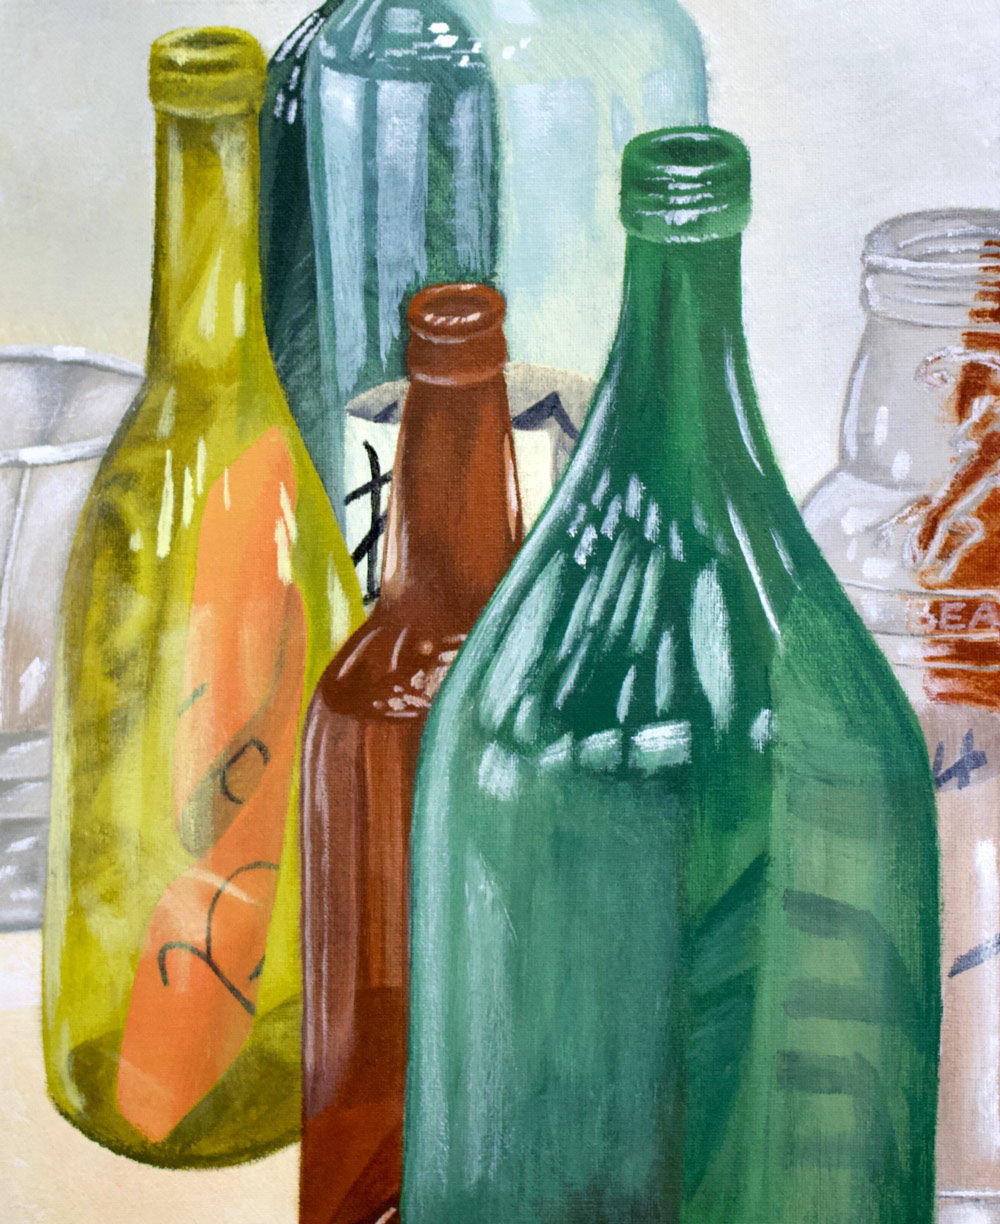 Painting of glass bottles.